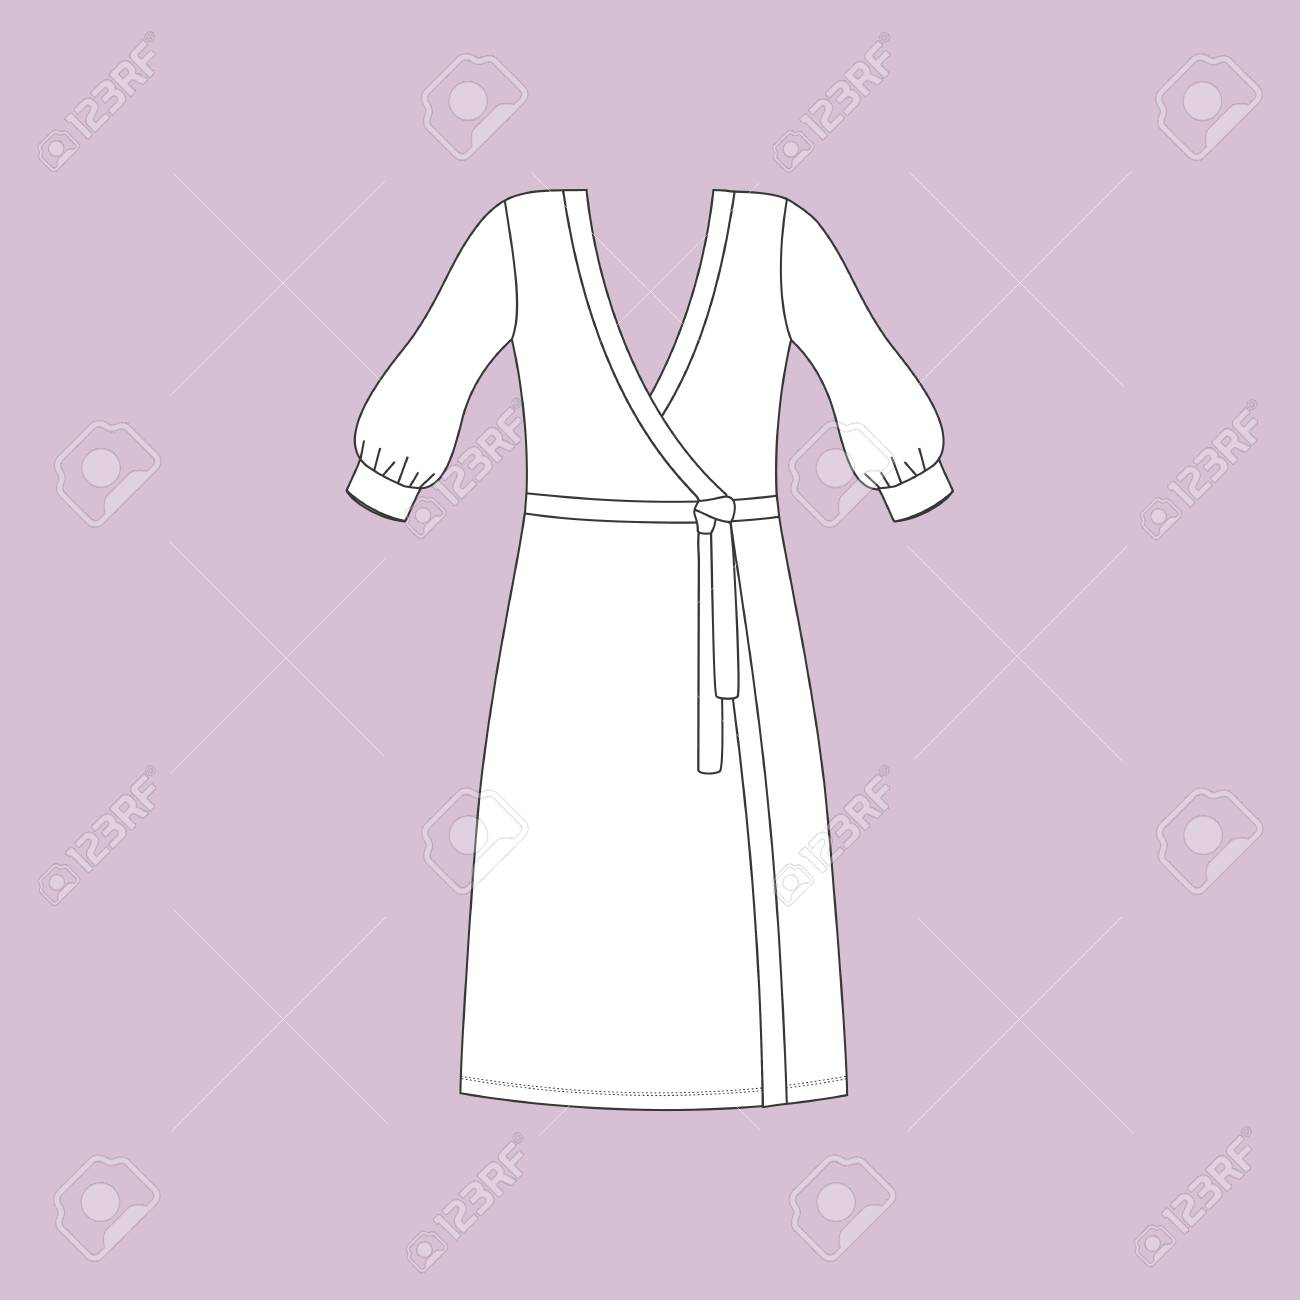 d8d8b45400 Dressing Gowns For Women. Bathrobe Home. Royalty Free Cliparts ...